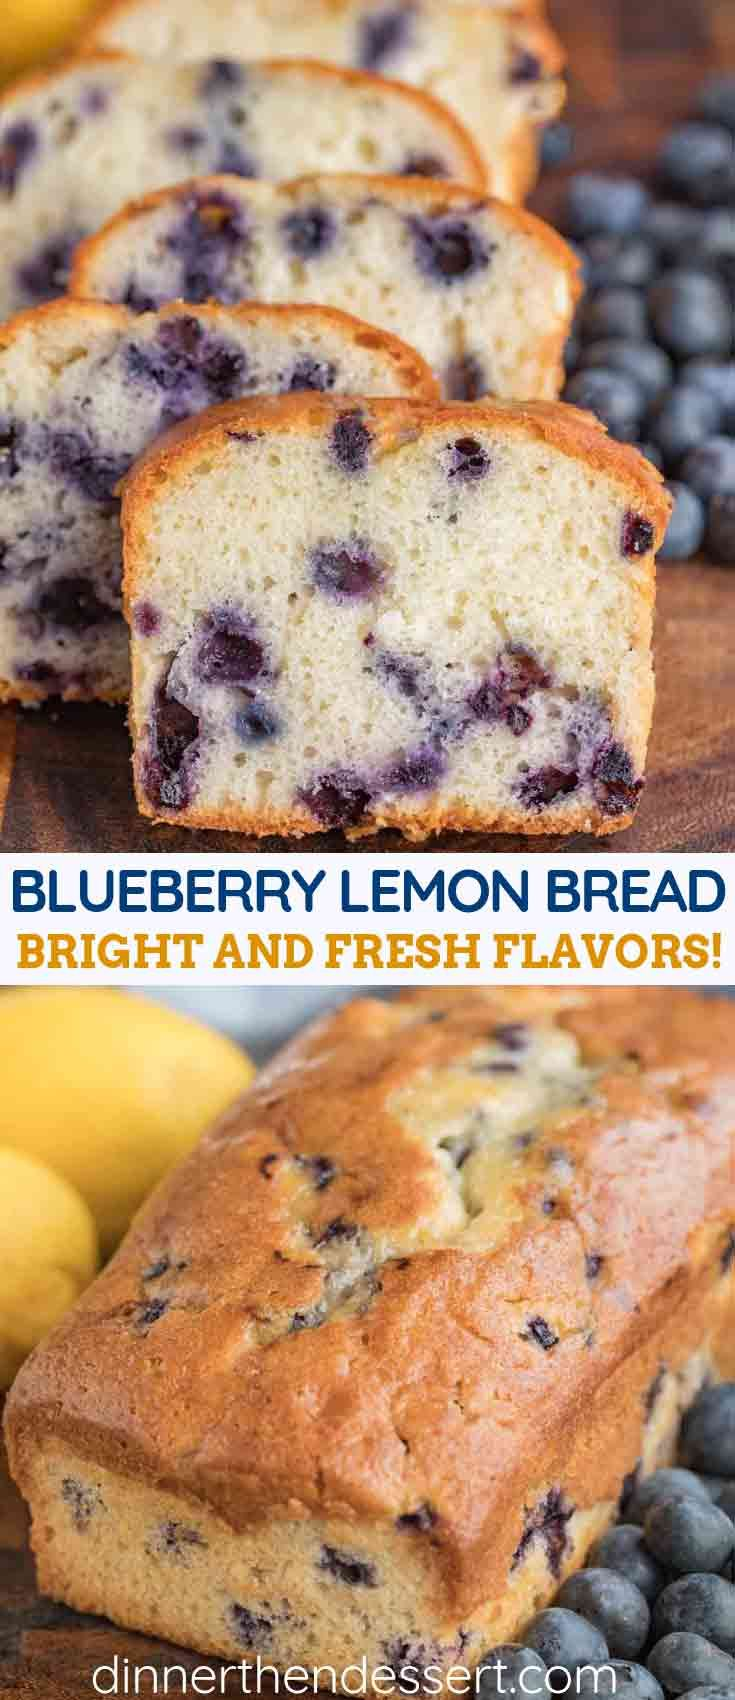 Blueberry Lemon Bread is soft, moist, tender and made with a full cup of fresh blueberries, fresh l